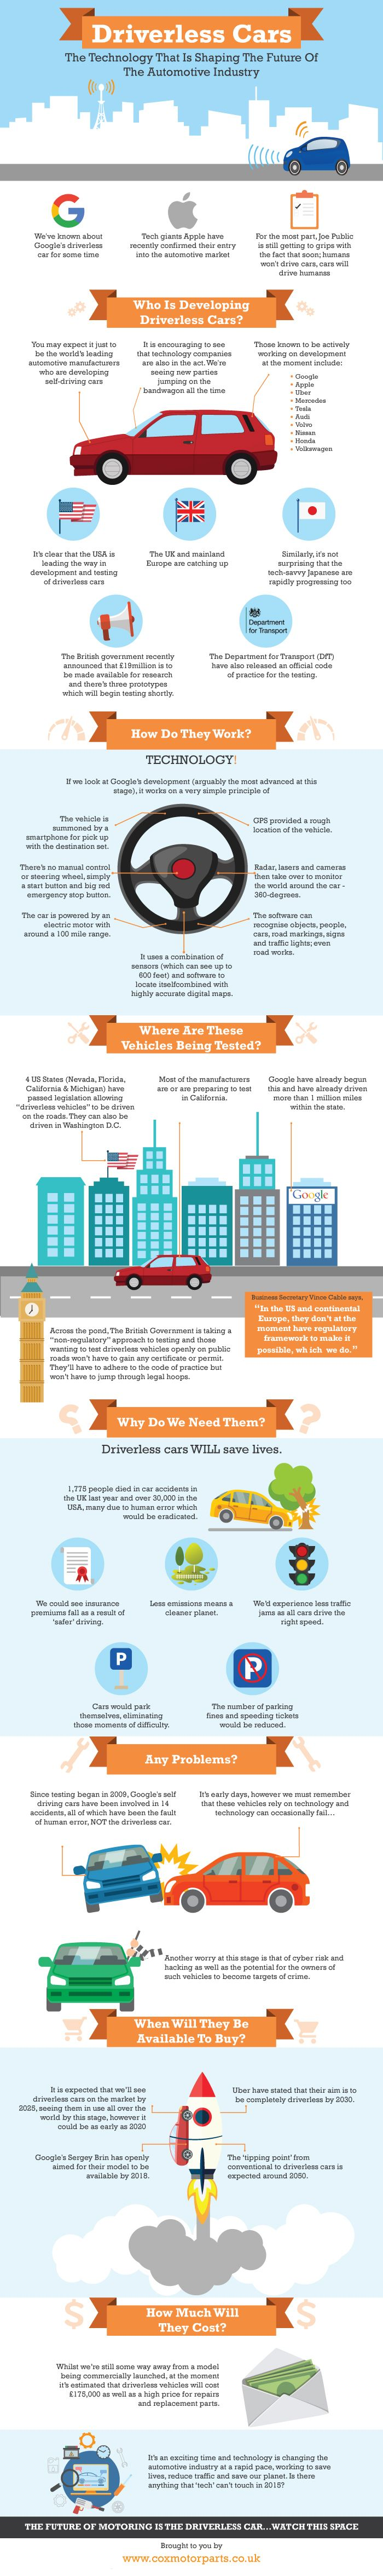 Driverless Cars – The Technology That Is Shaping The Future Of The Automotive Industry #infographic